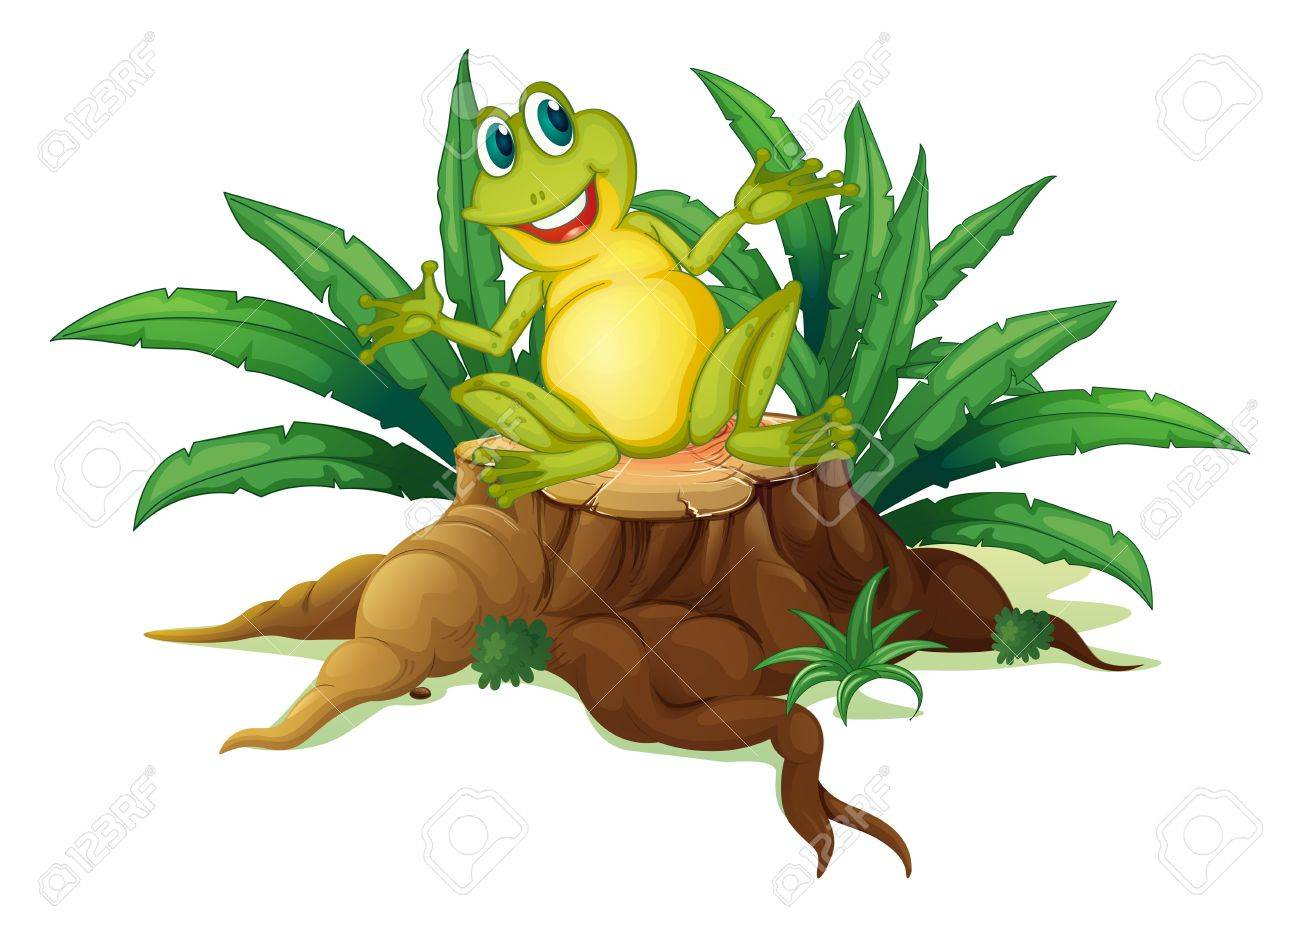 Illustration of a smiling frog above a wood on a white background Stock Vector - 19301836